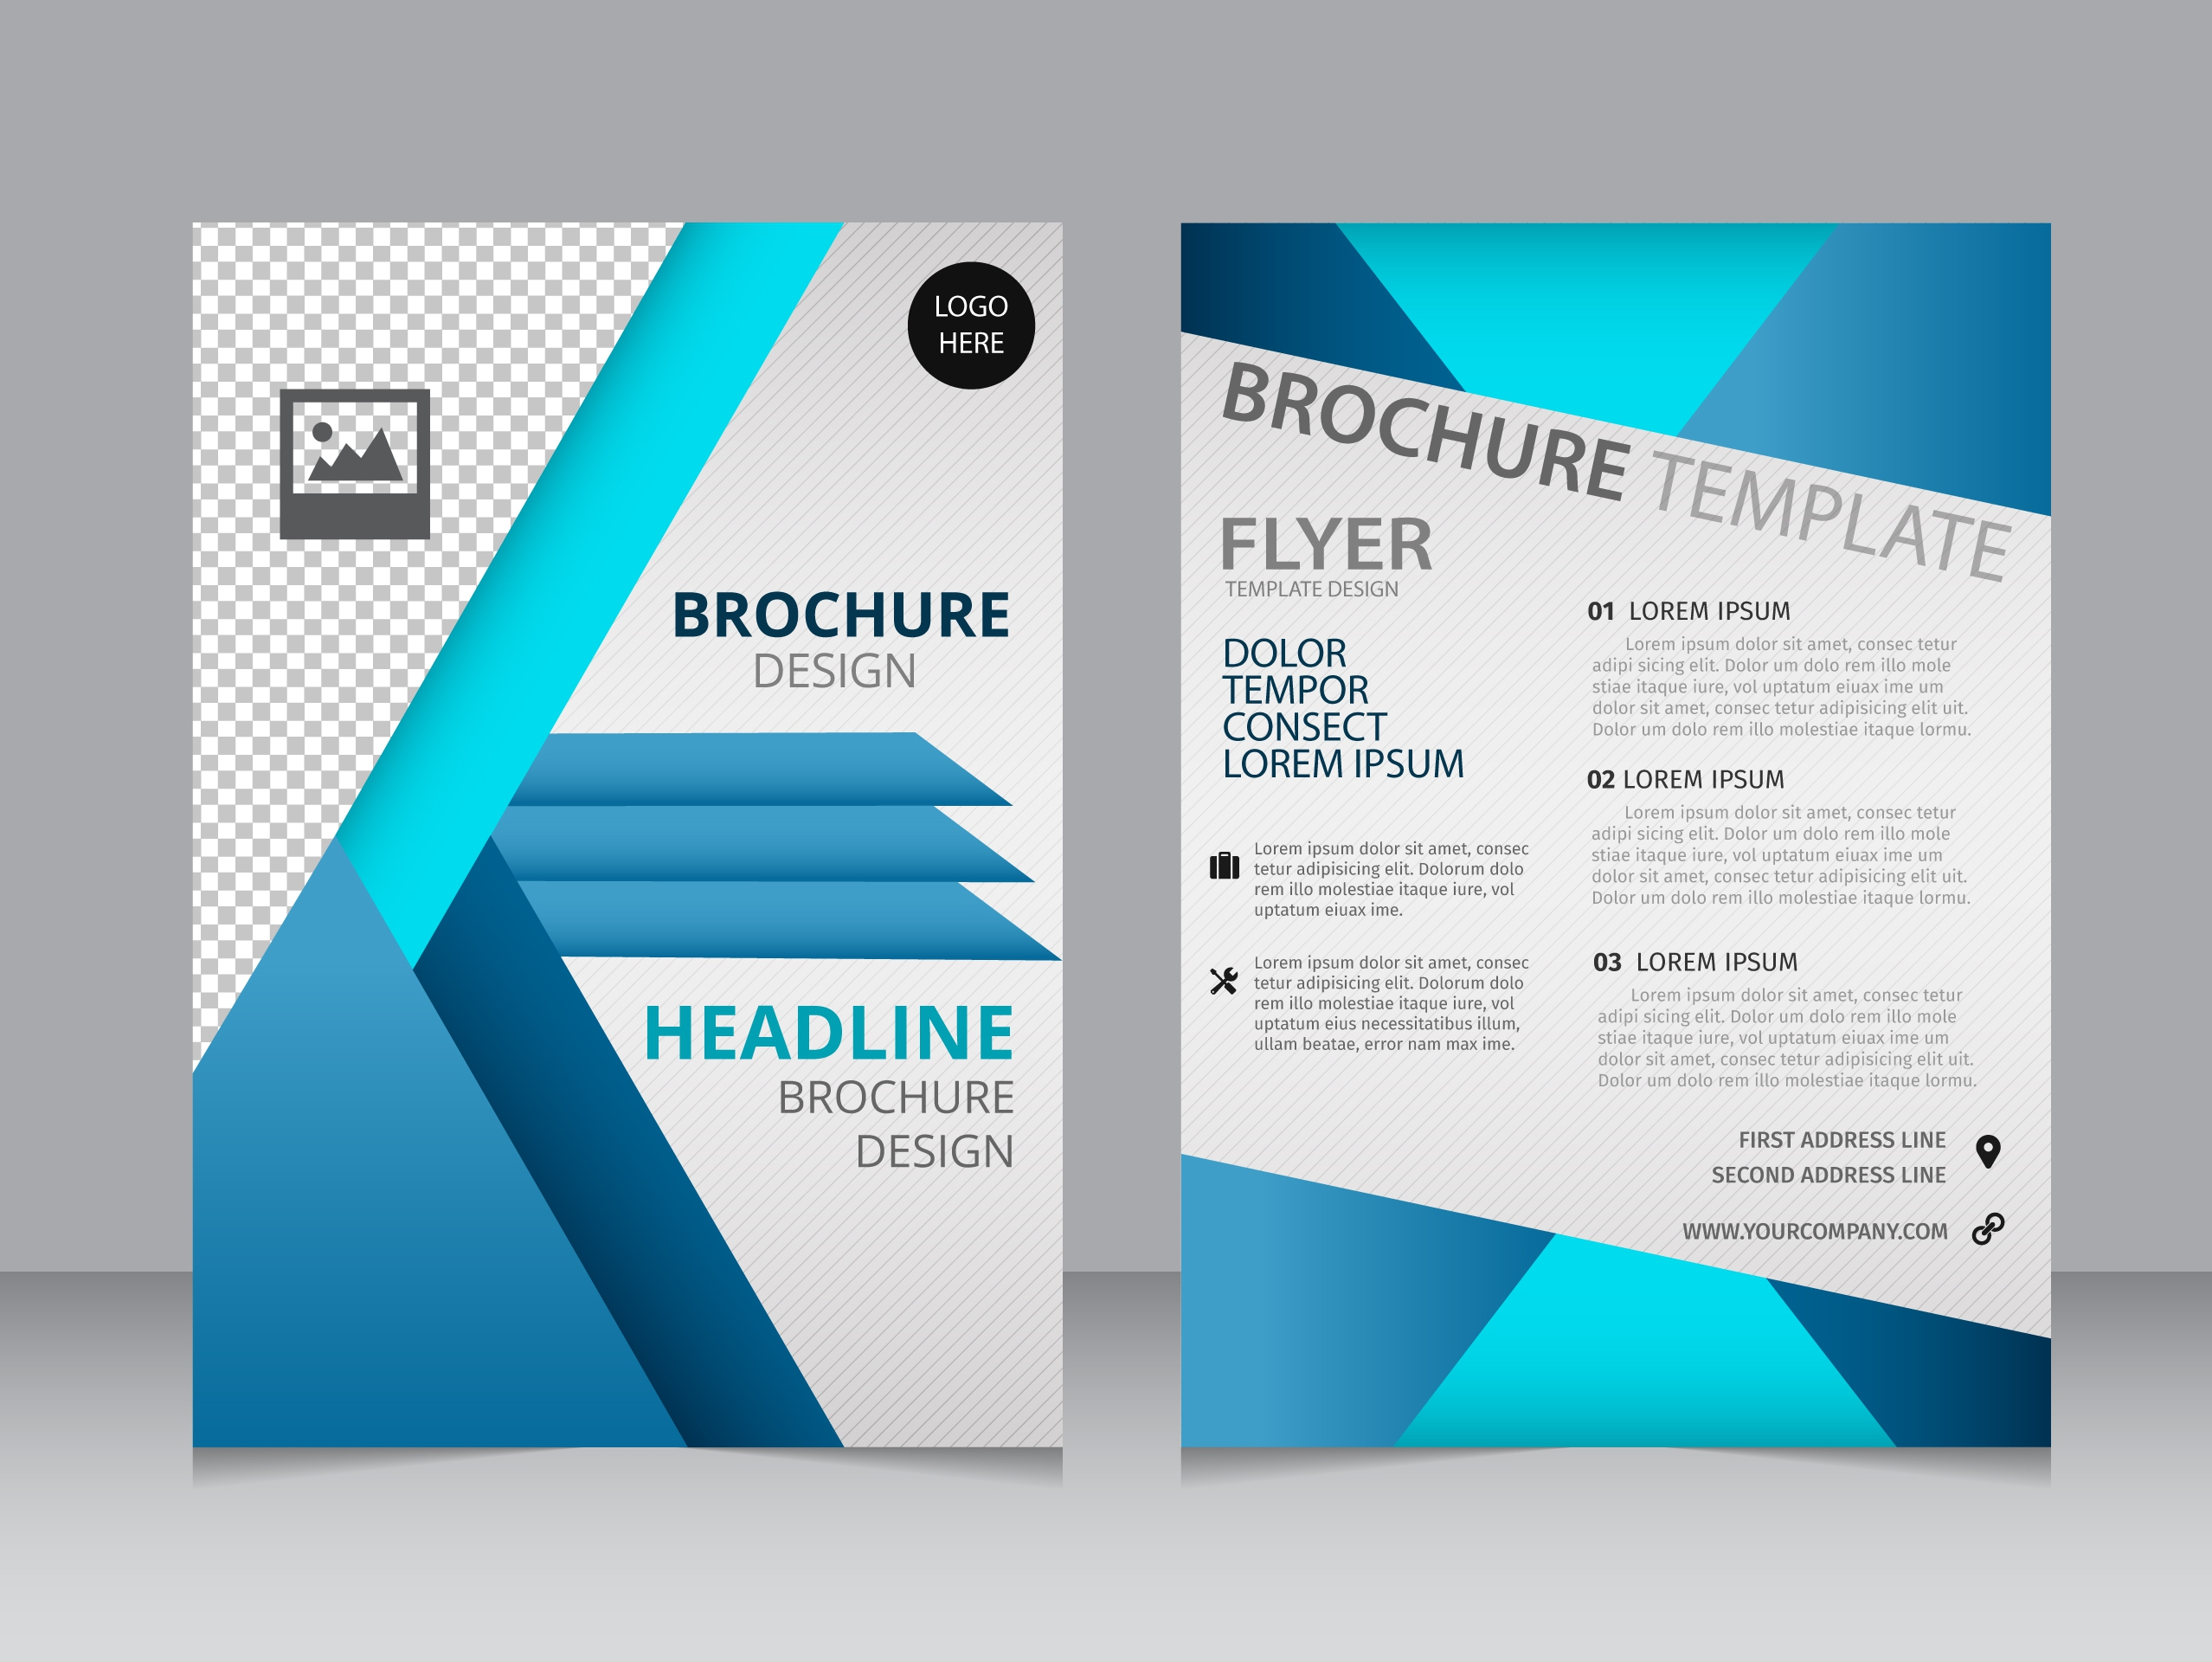 brochure design template free - 11 free sample travel brochure templates printable samples